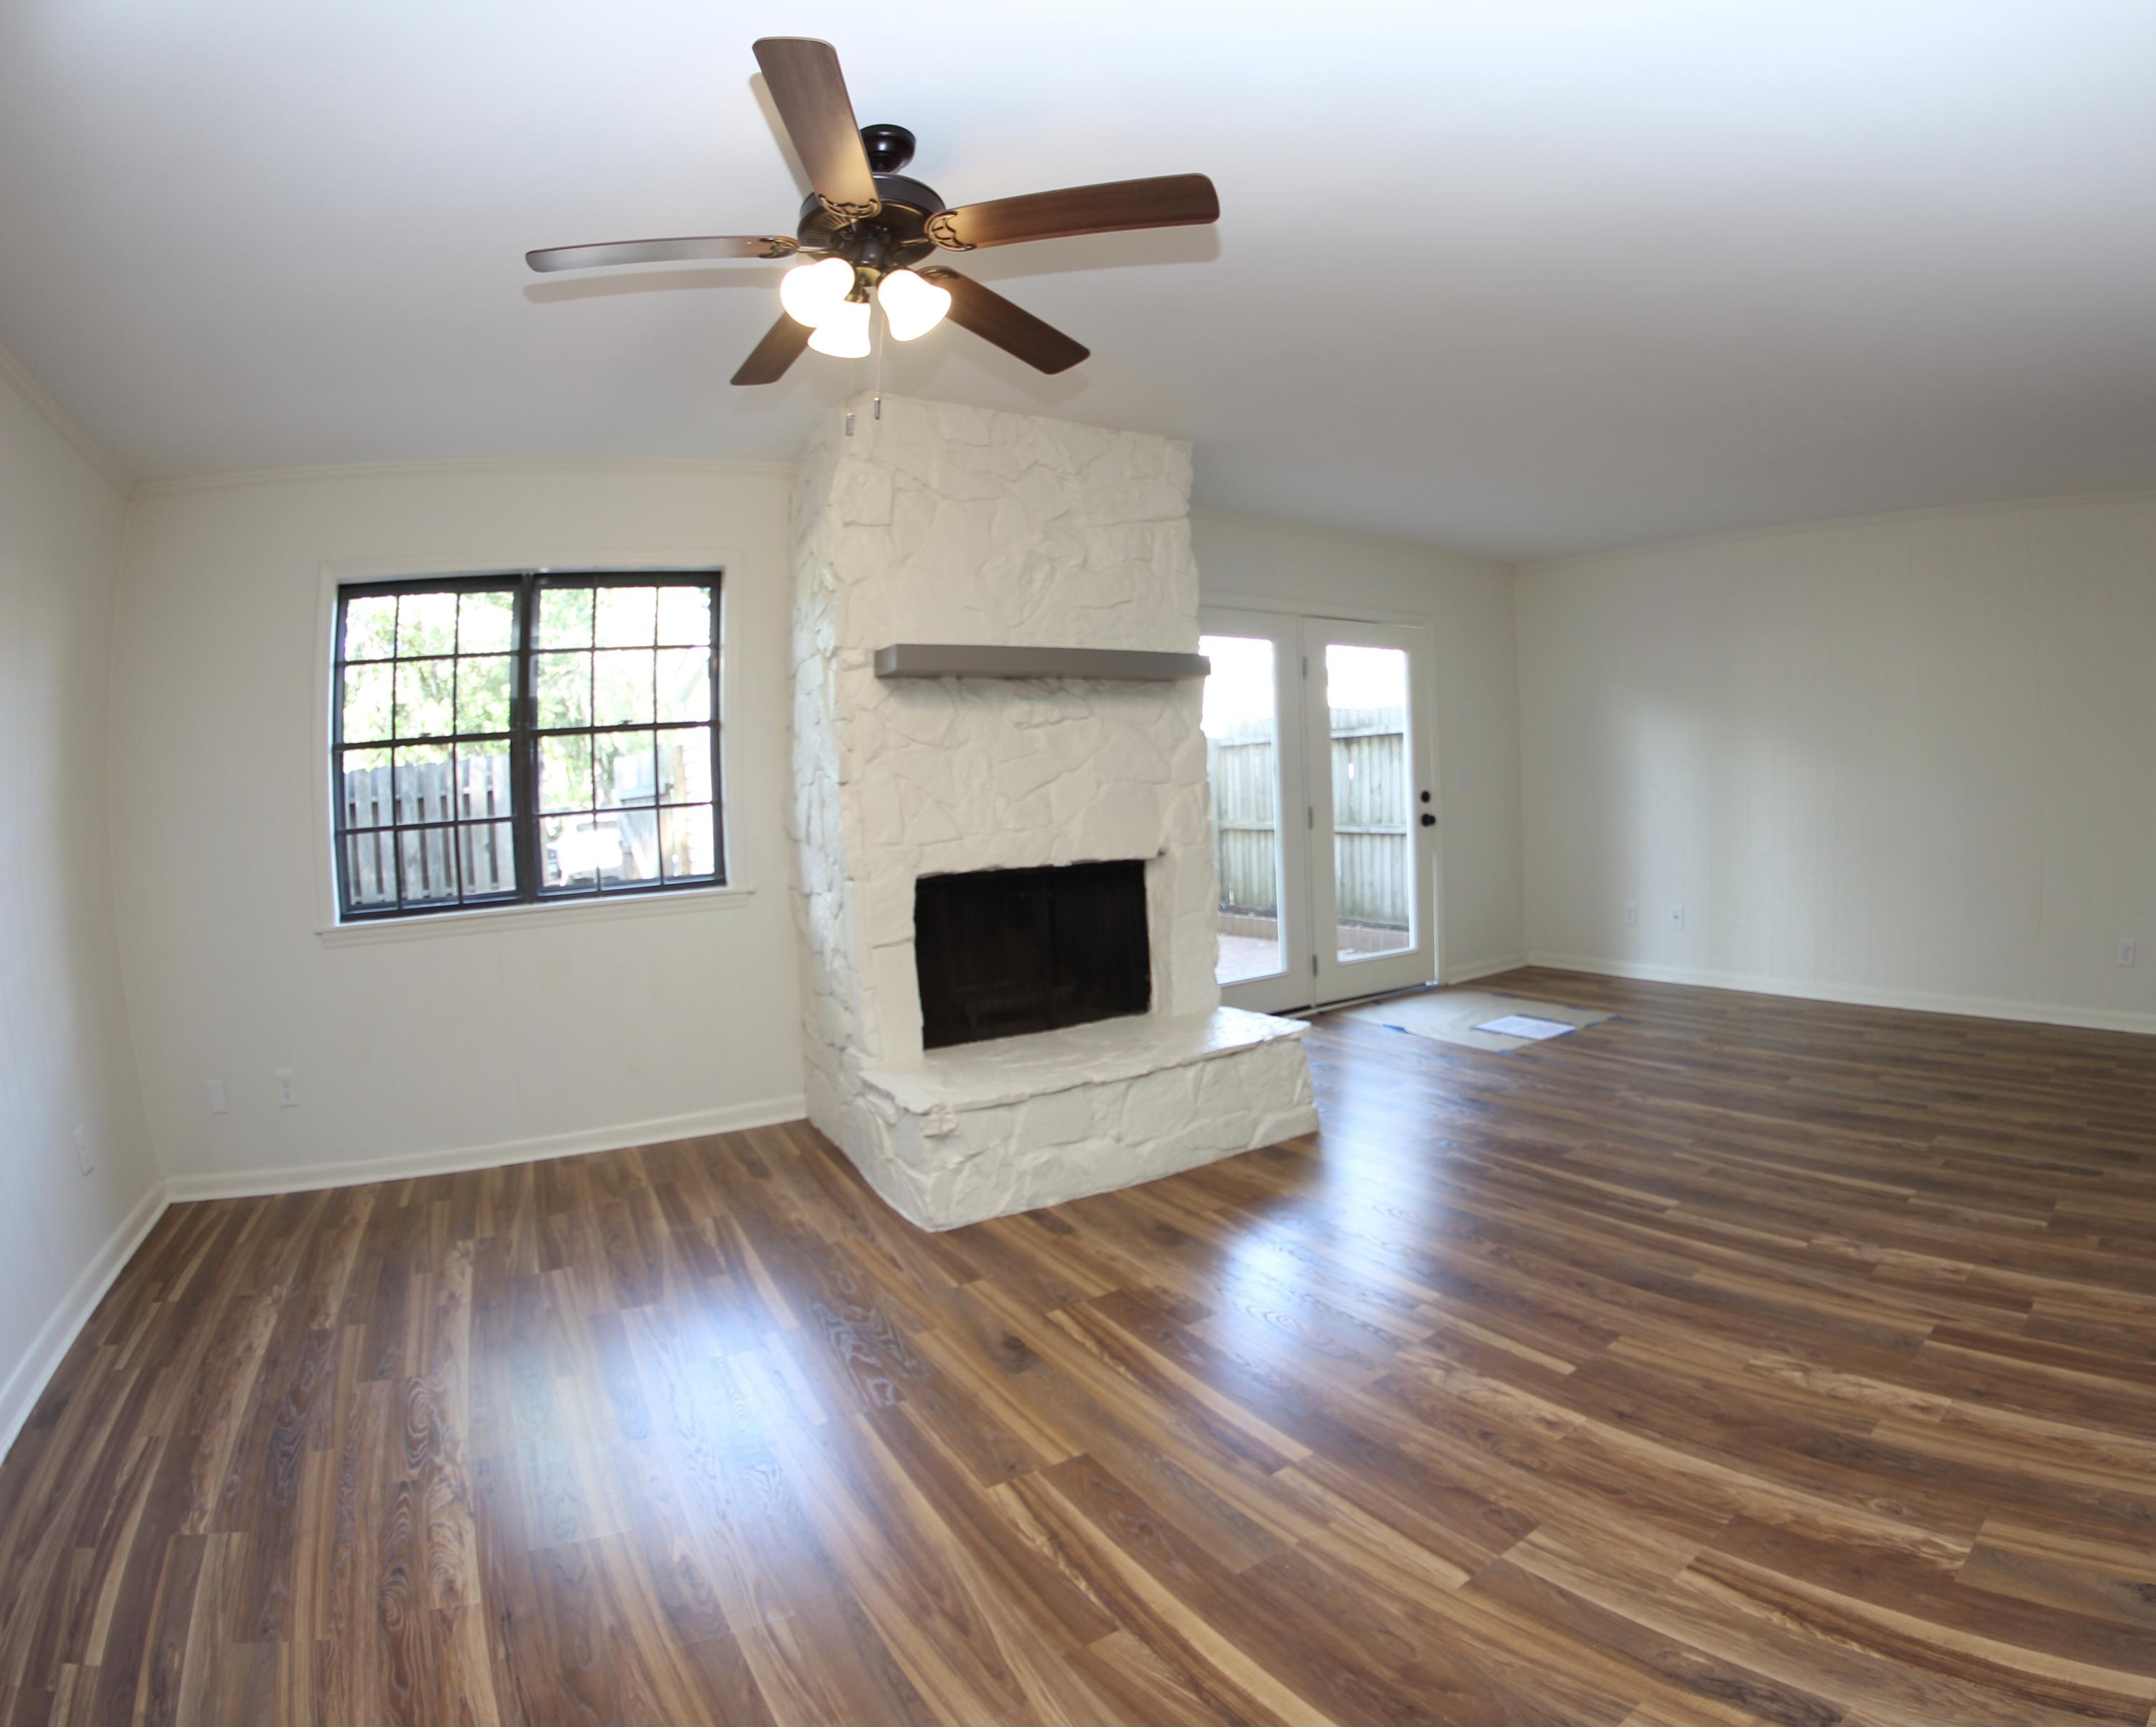 Old Towne Villas Homes For Sale - 2945 Cathedral, Charleston, SC - 23